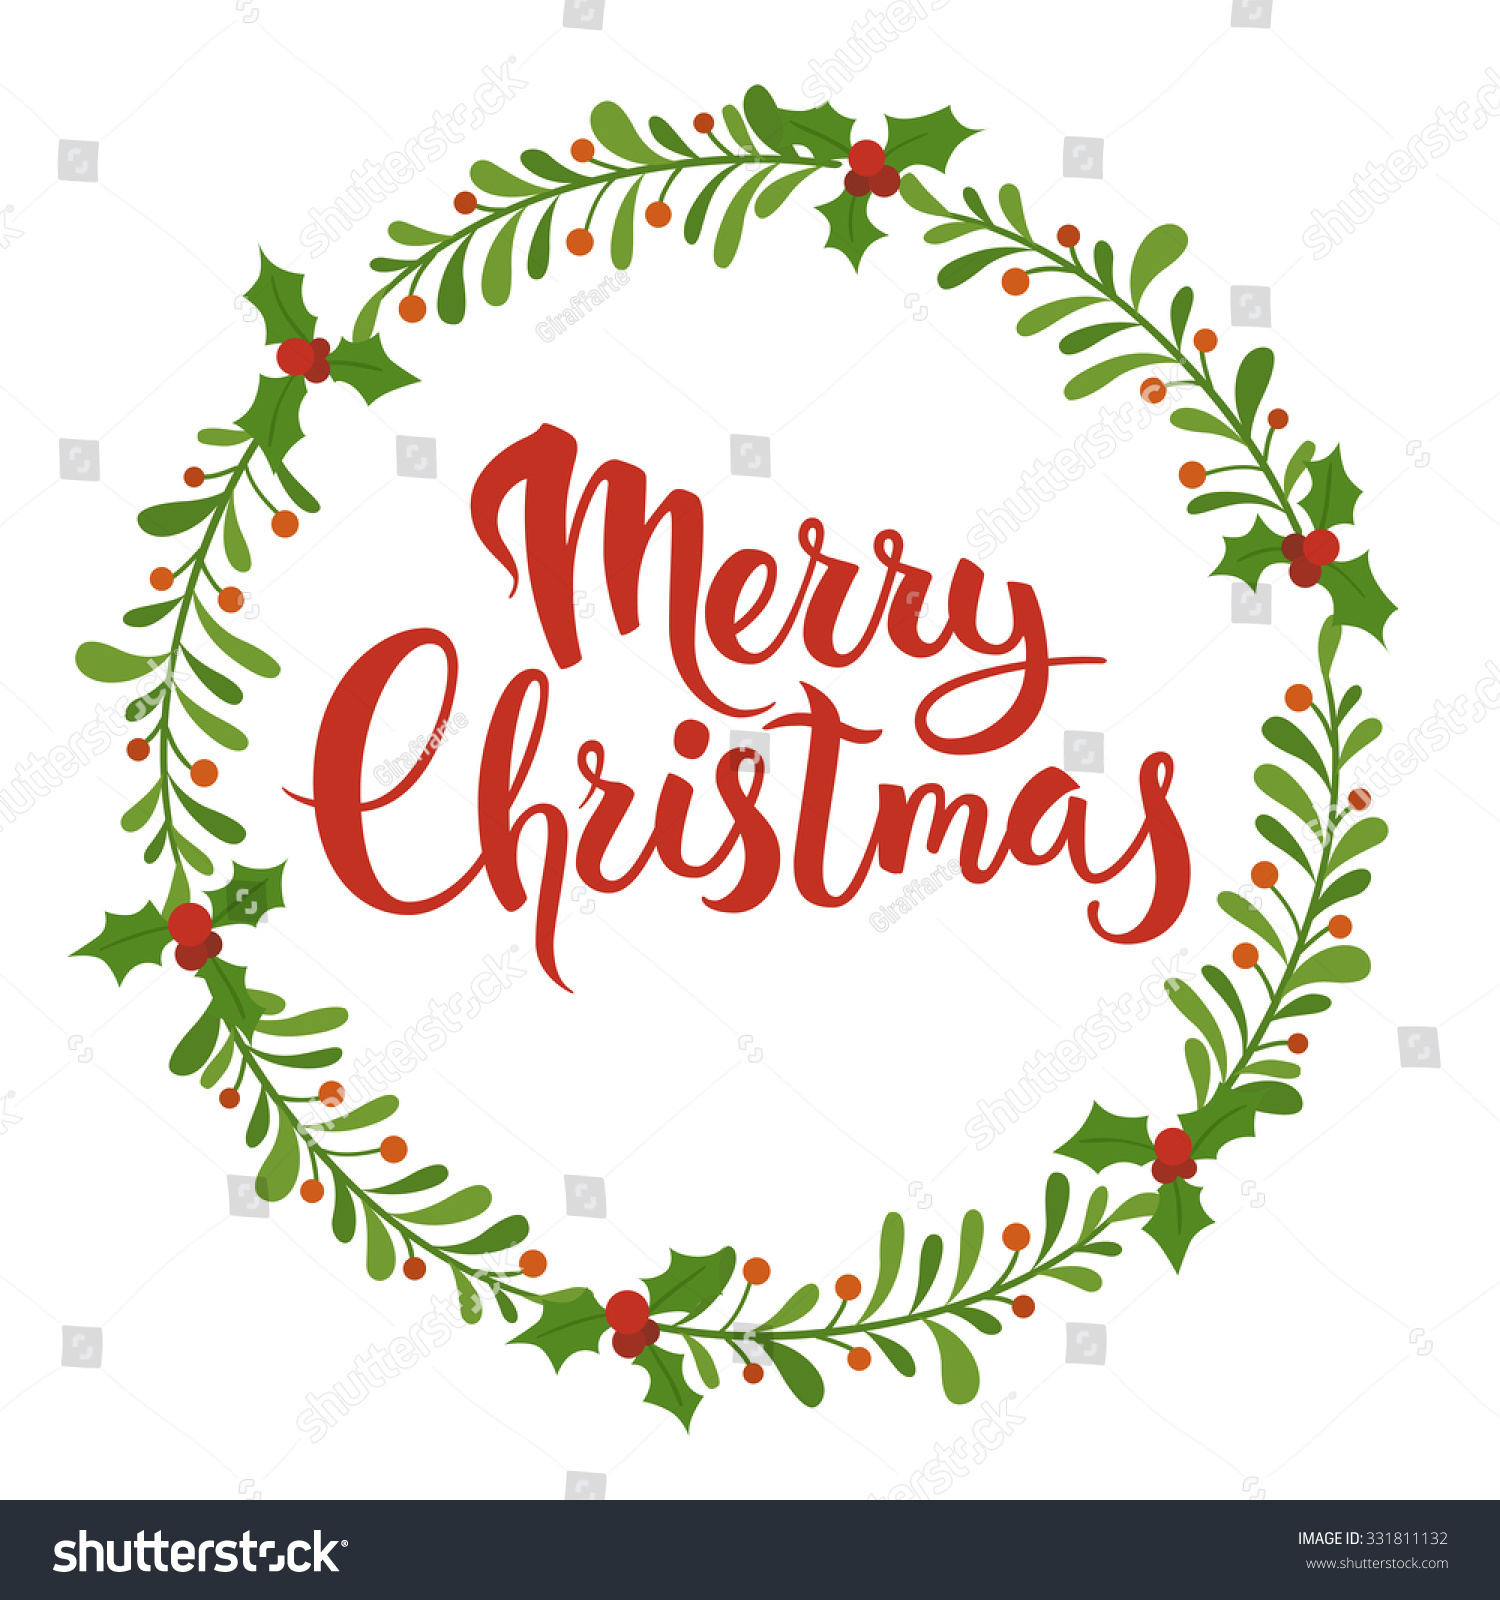 Merry Christmas Calligraphy Christmas Floral Frame Stock Vector HD ...